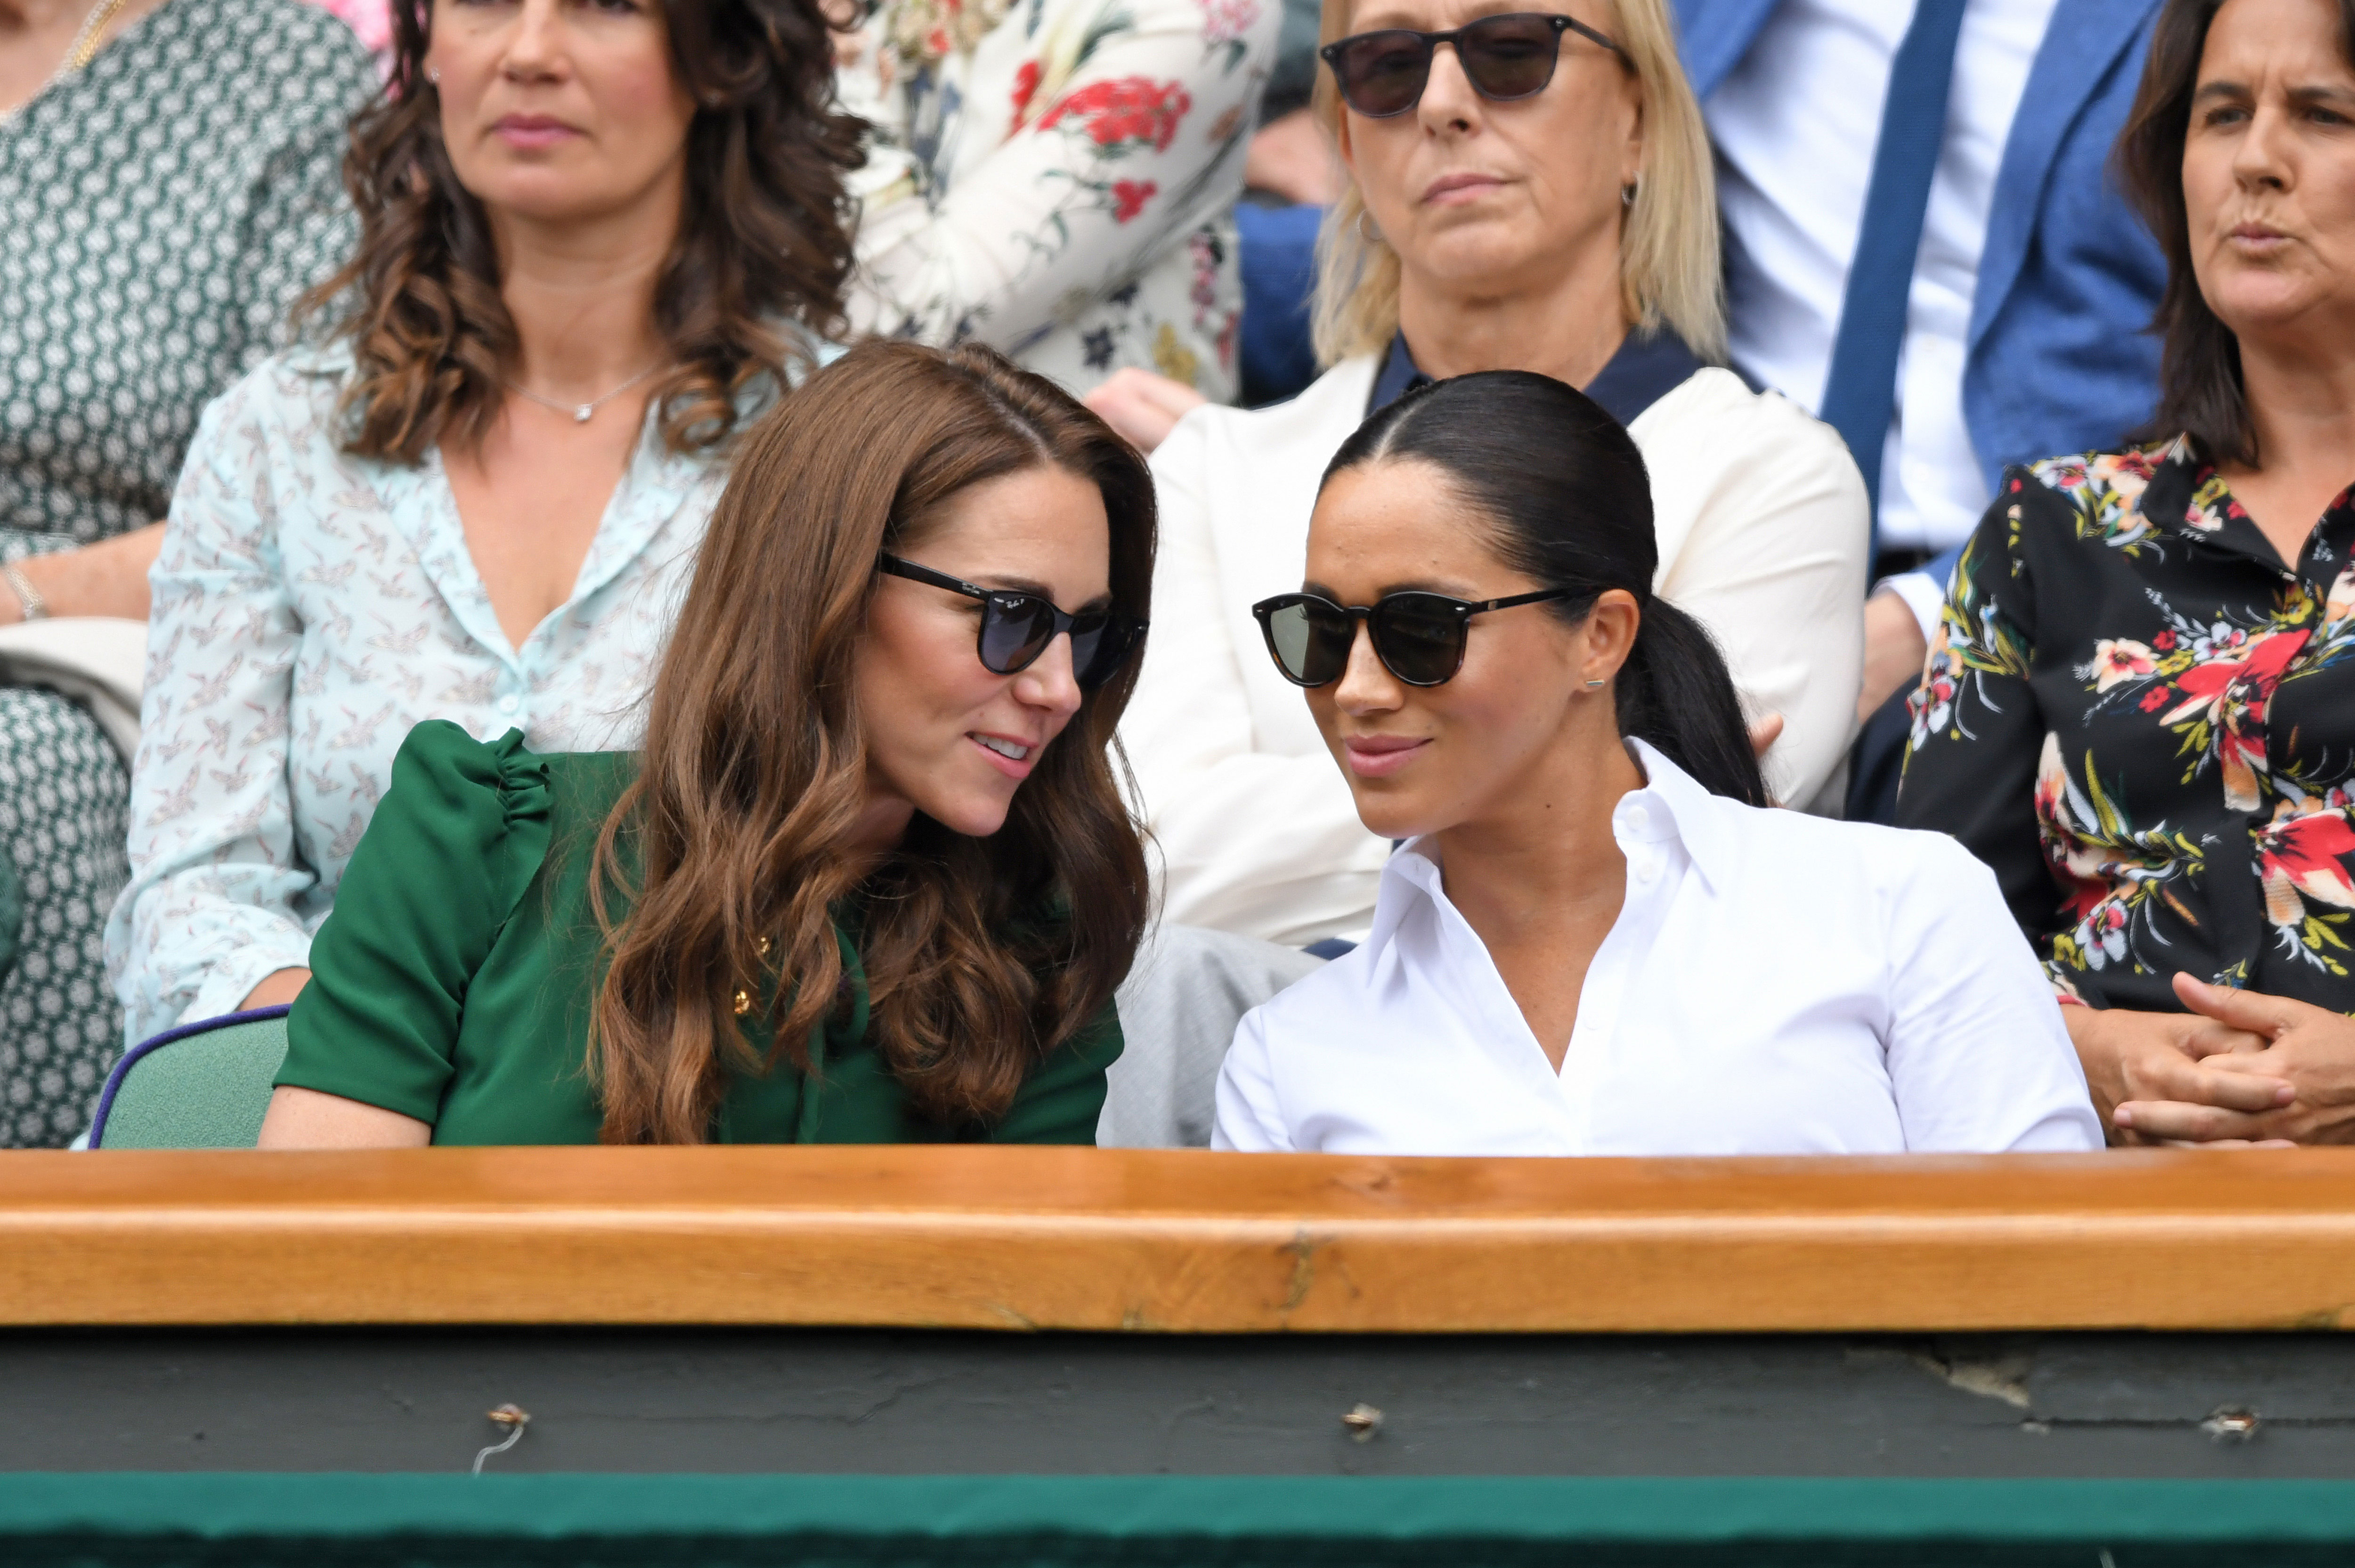 Catherine, Duchess of Cambridge, and Meghan, Duchess of Sussex, attend Wimbledon in London on July 13, 2019.